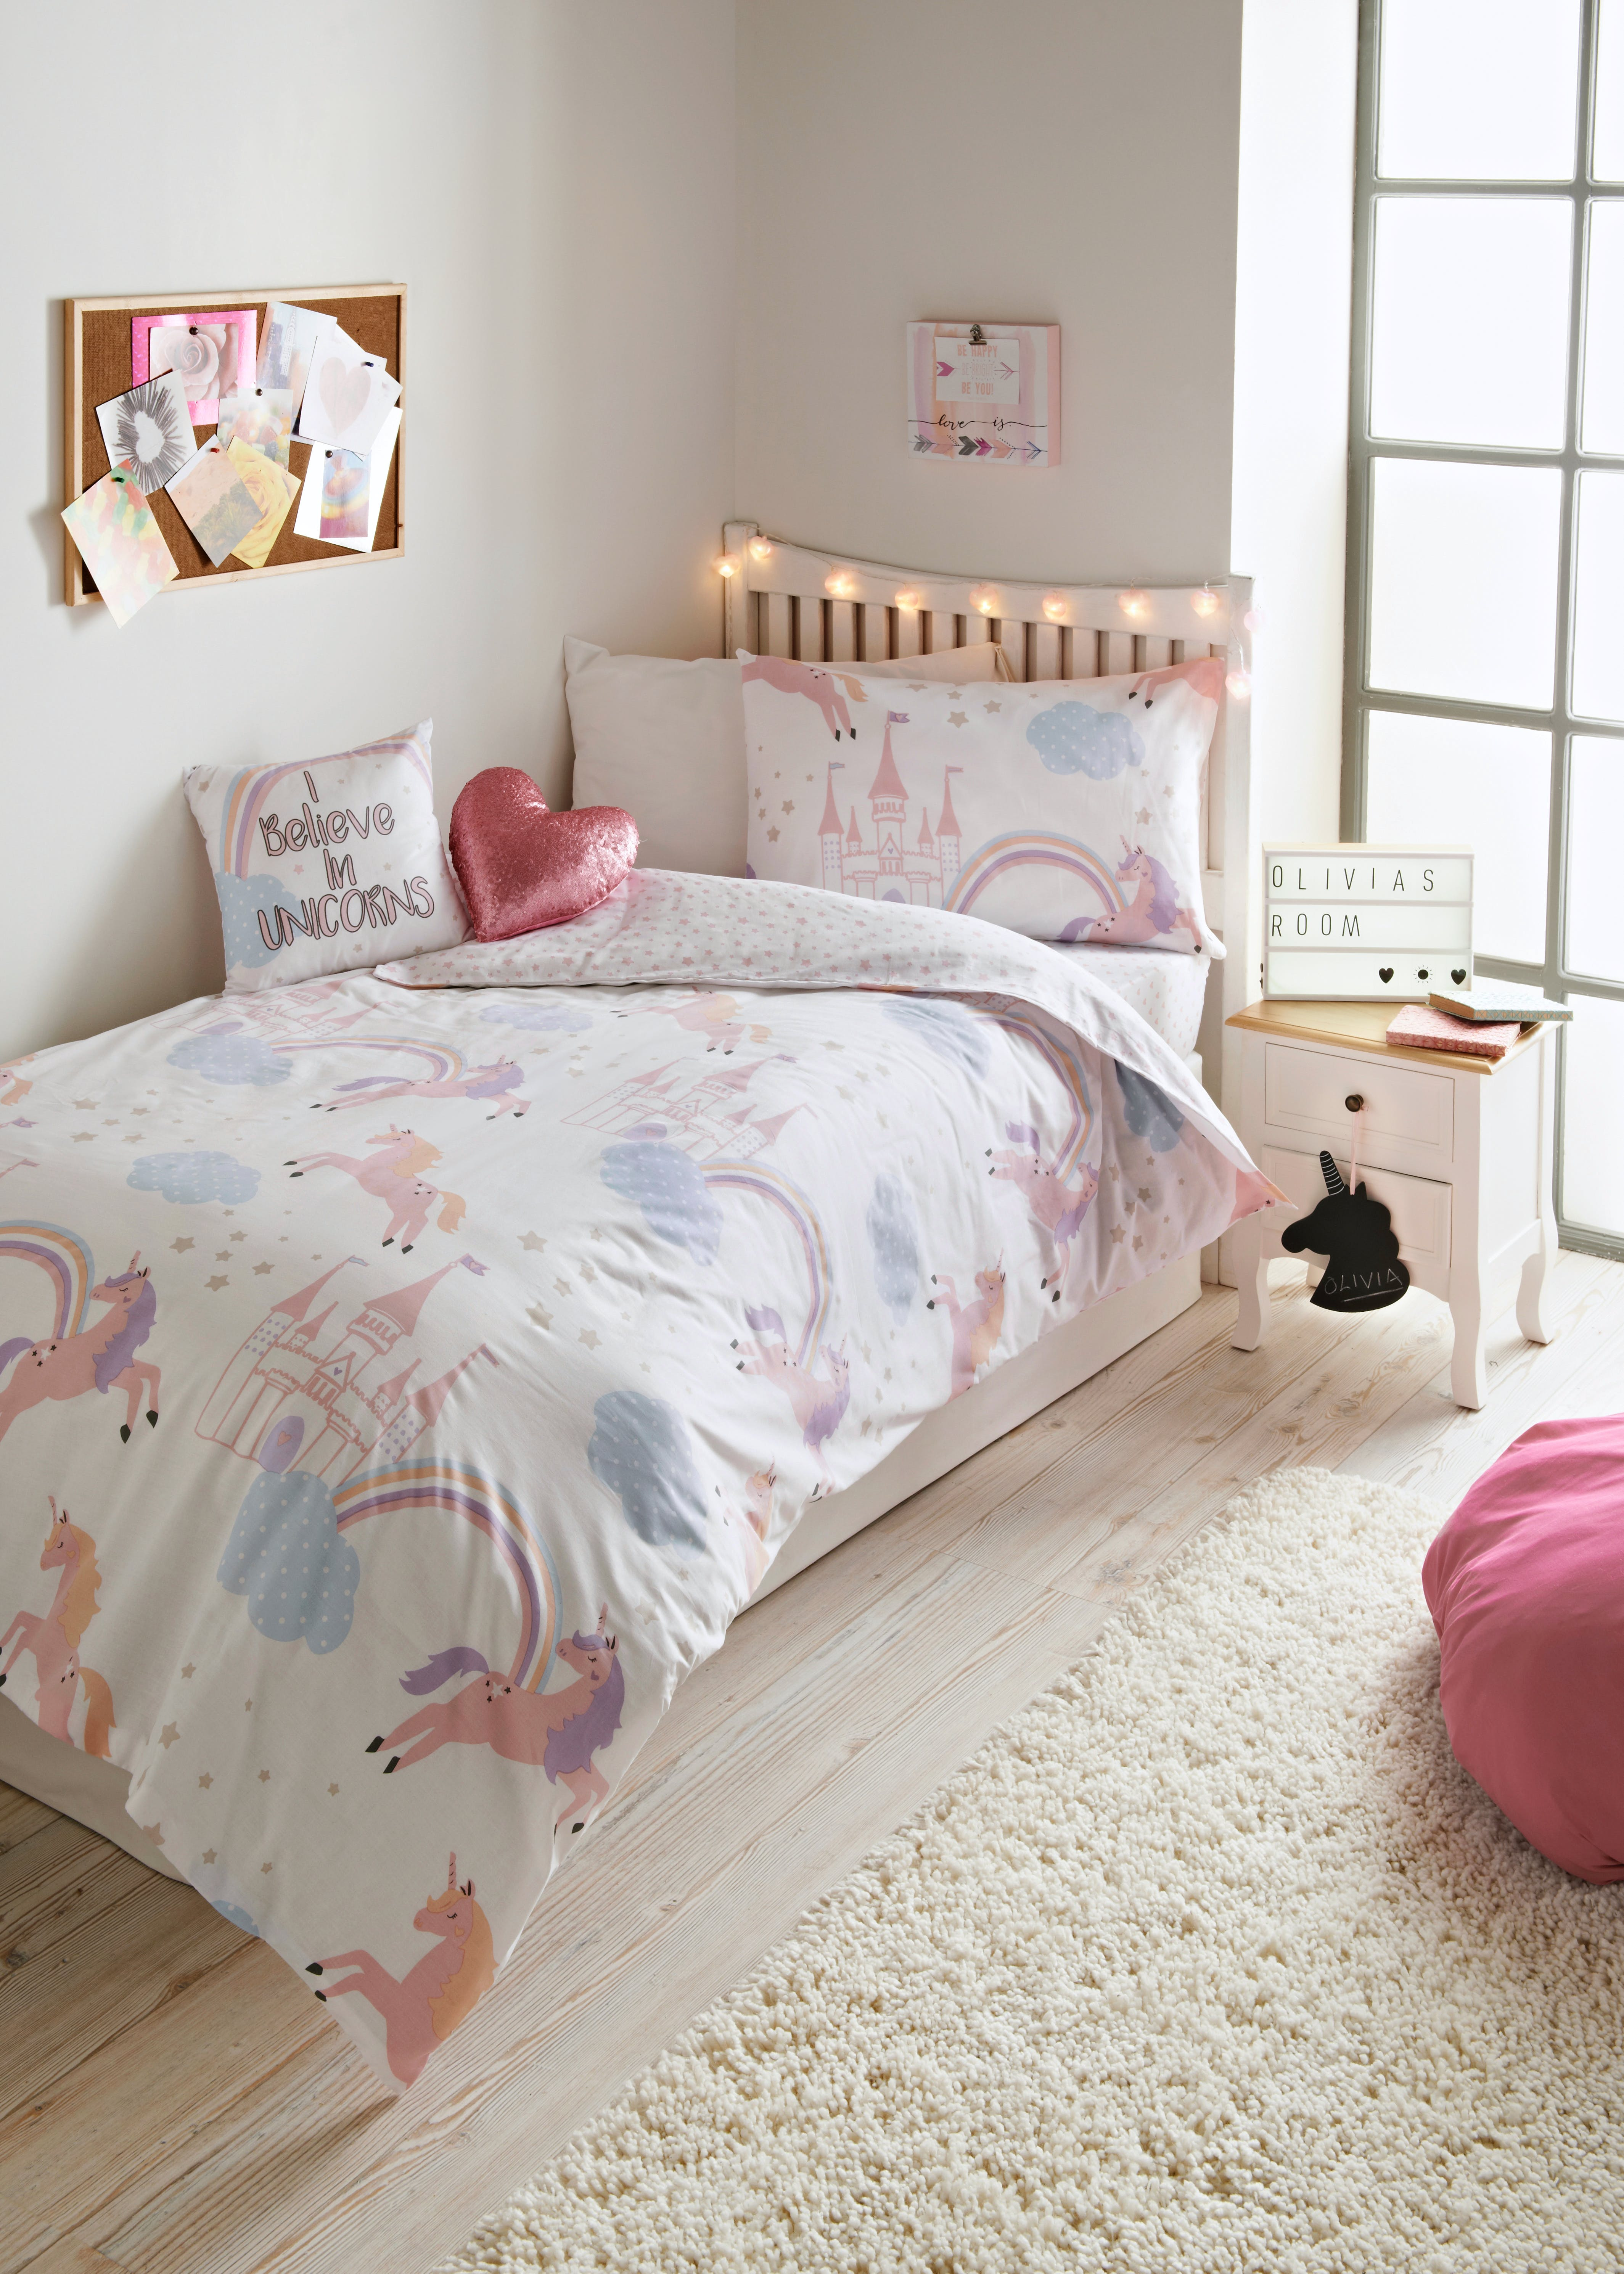 Toddler Unicorn Print Duvet Cover Small Bed